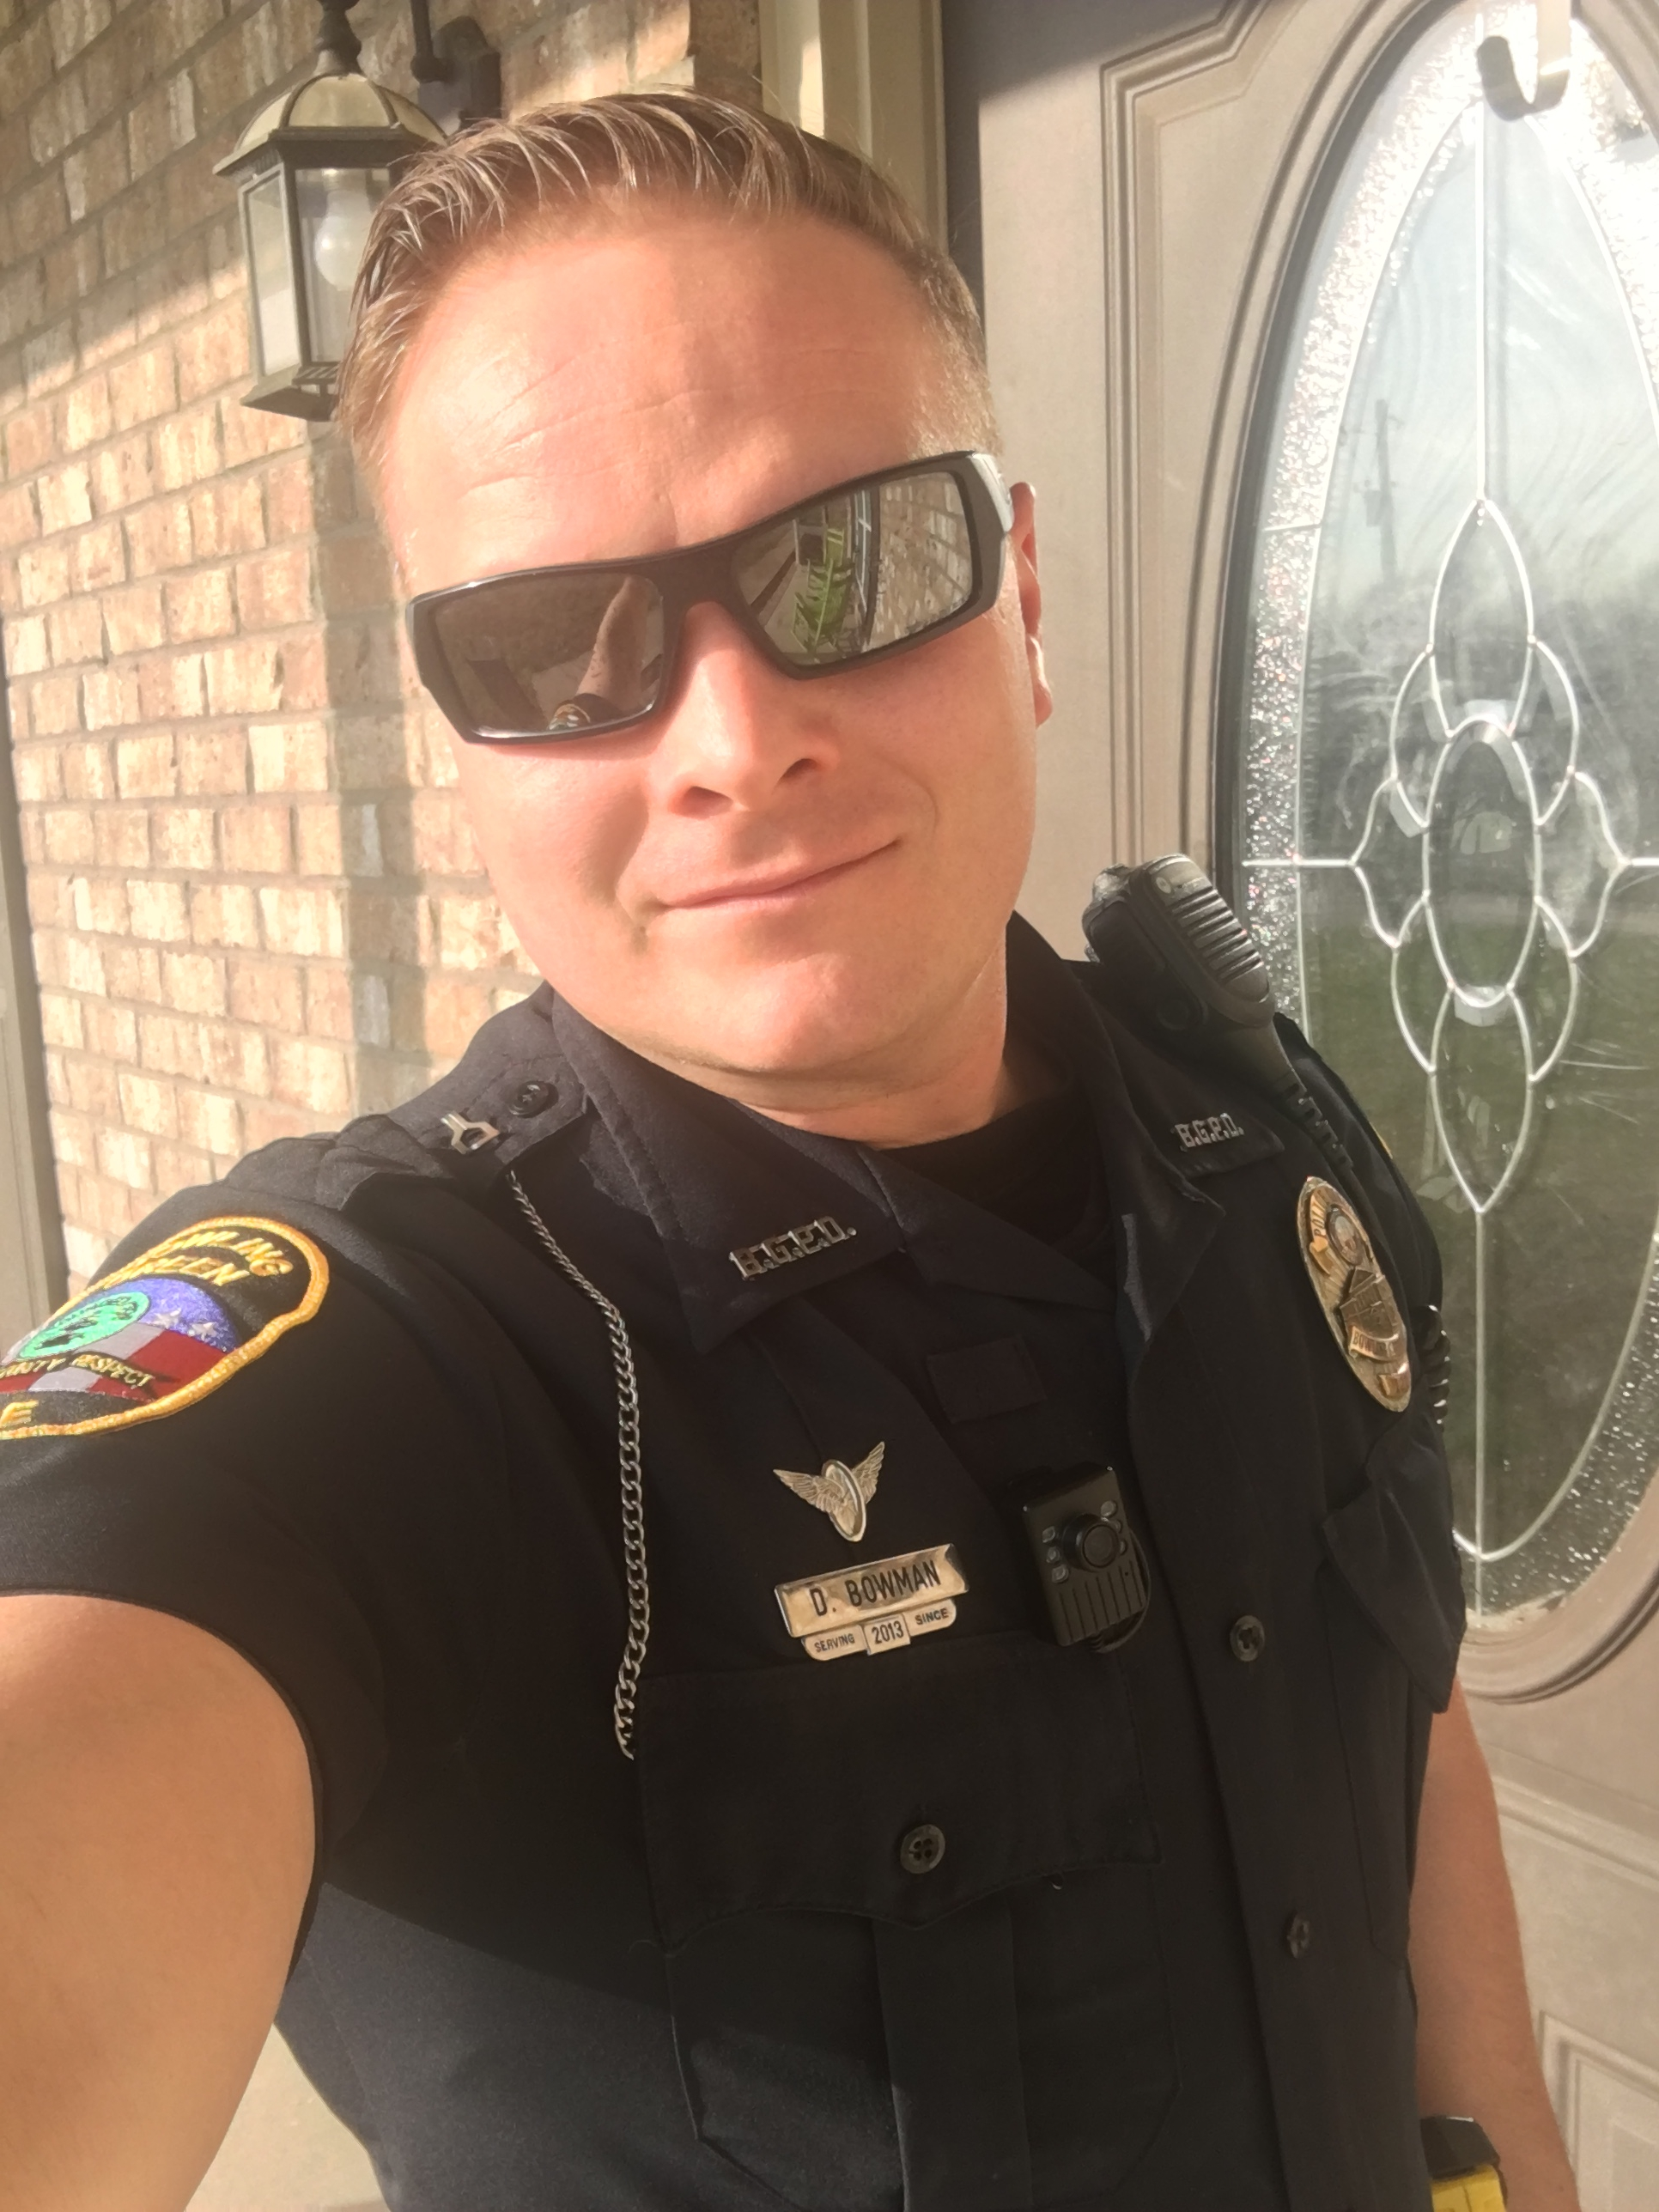 Dustin Bowman – First Responder of the Week